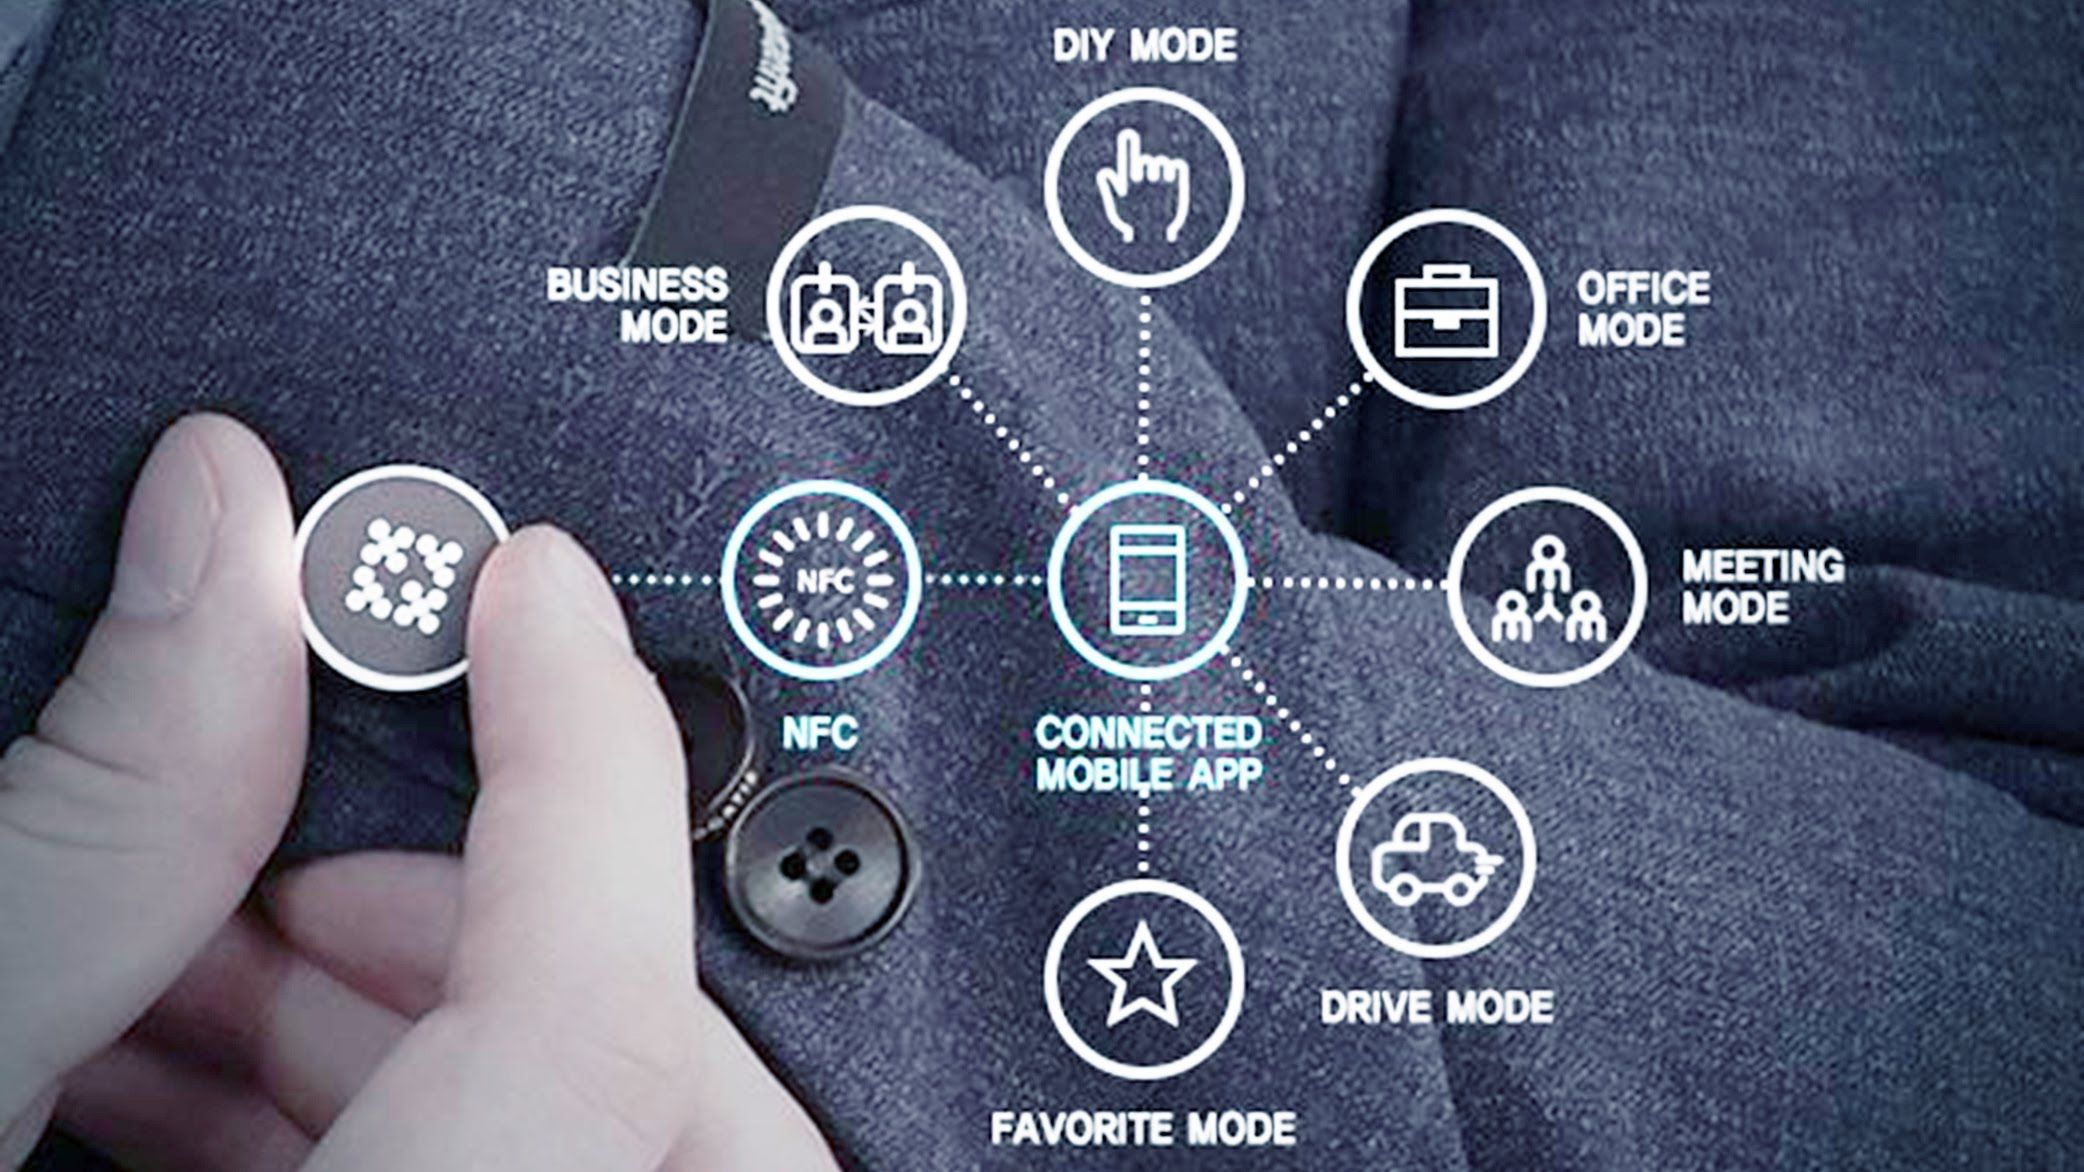 The HumanFit; World's FIRST Smart CLOTHING Brand by